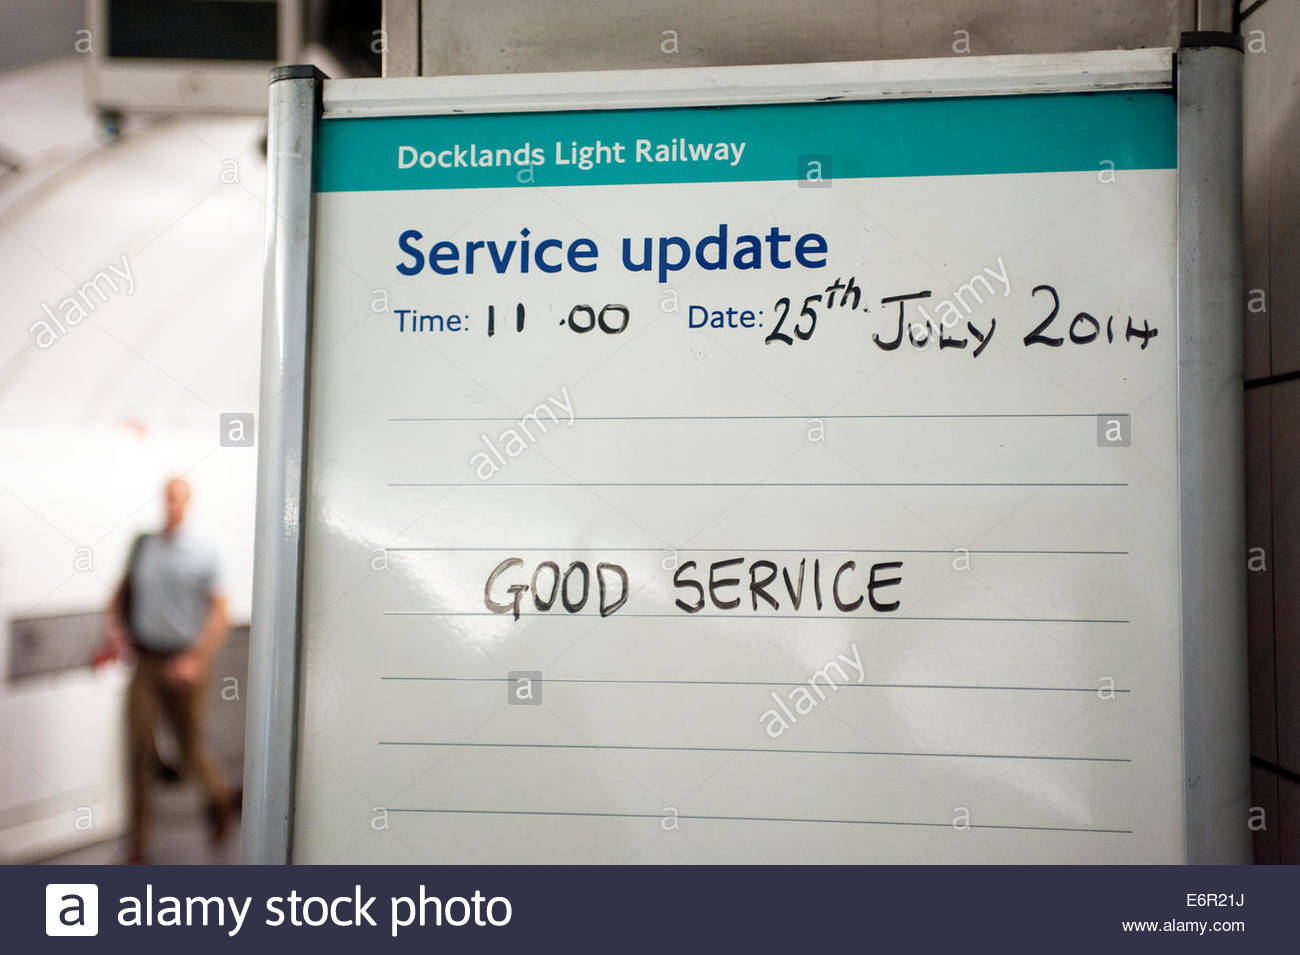 London UK  Service Update on the London Docklands railway - Good service. - Stock Image